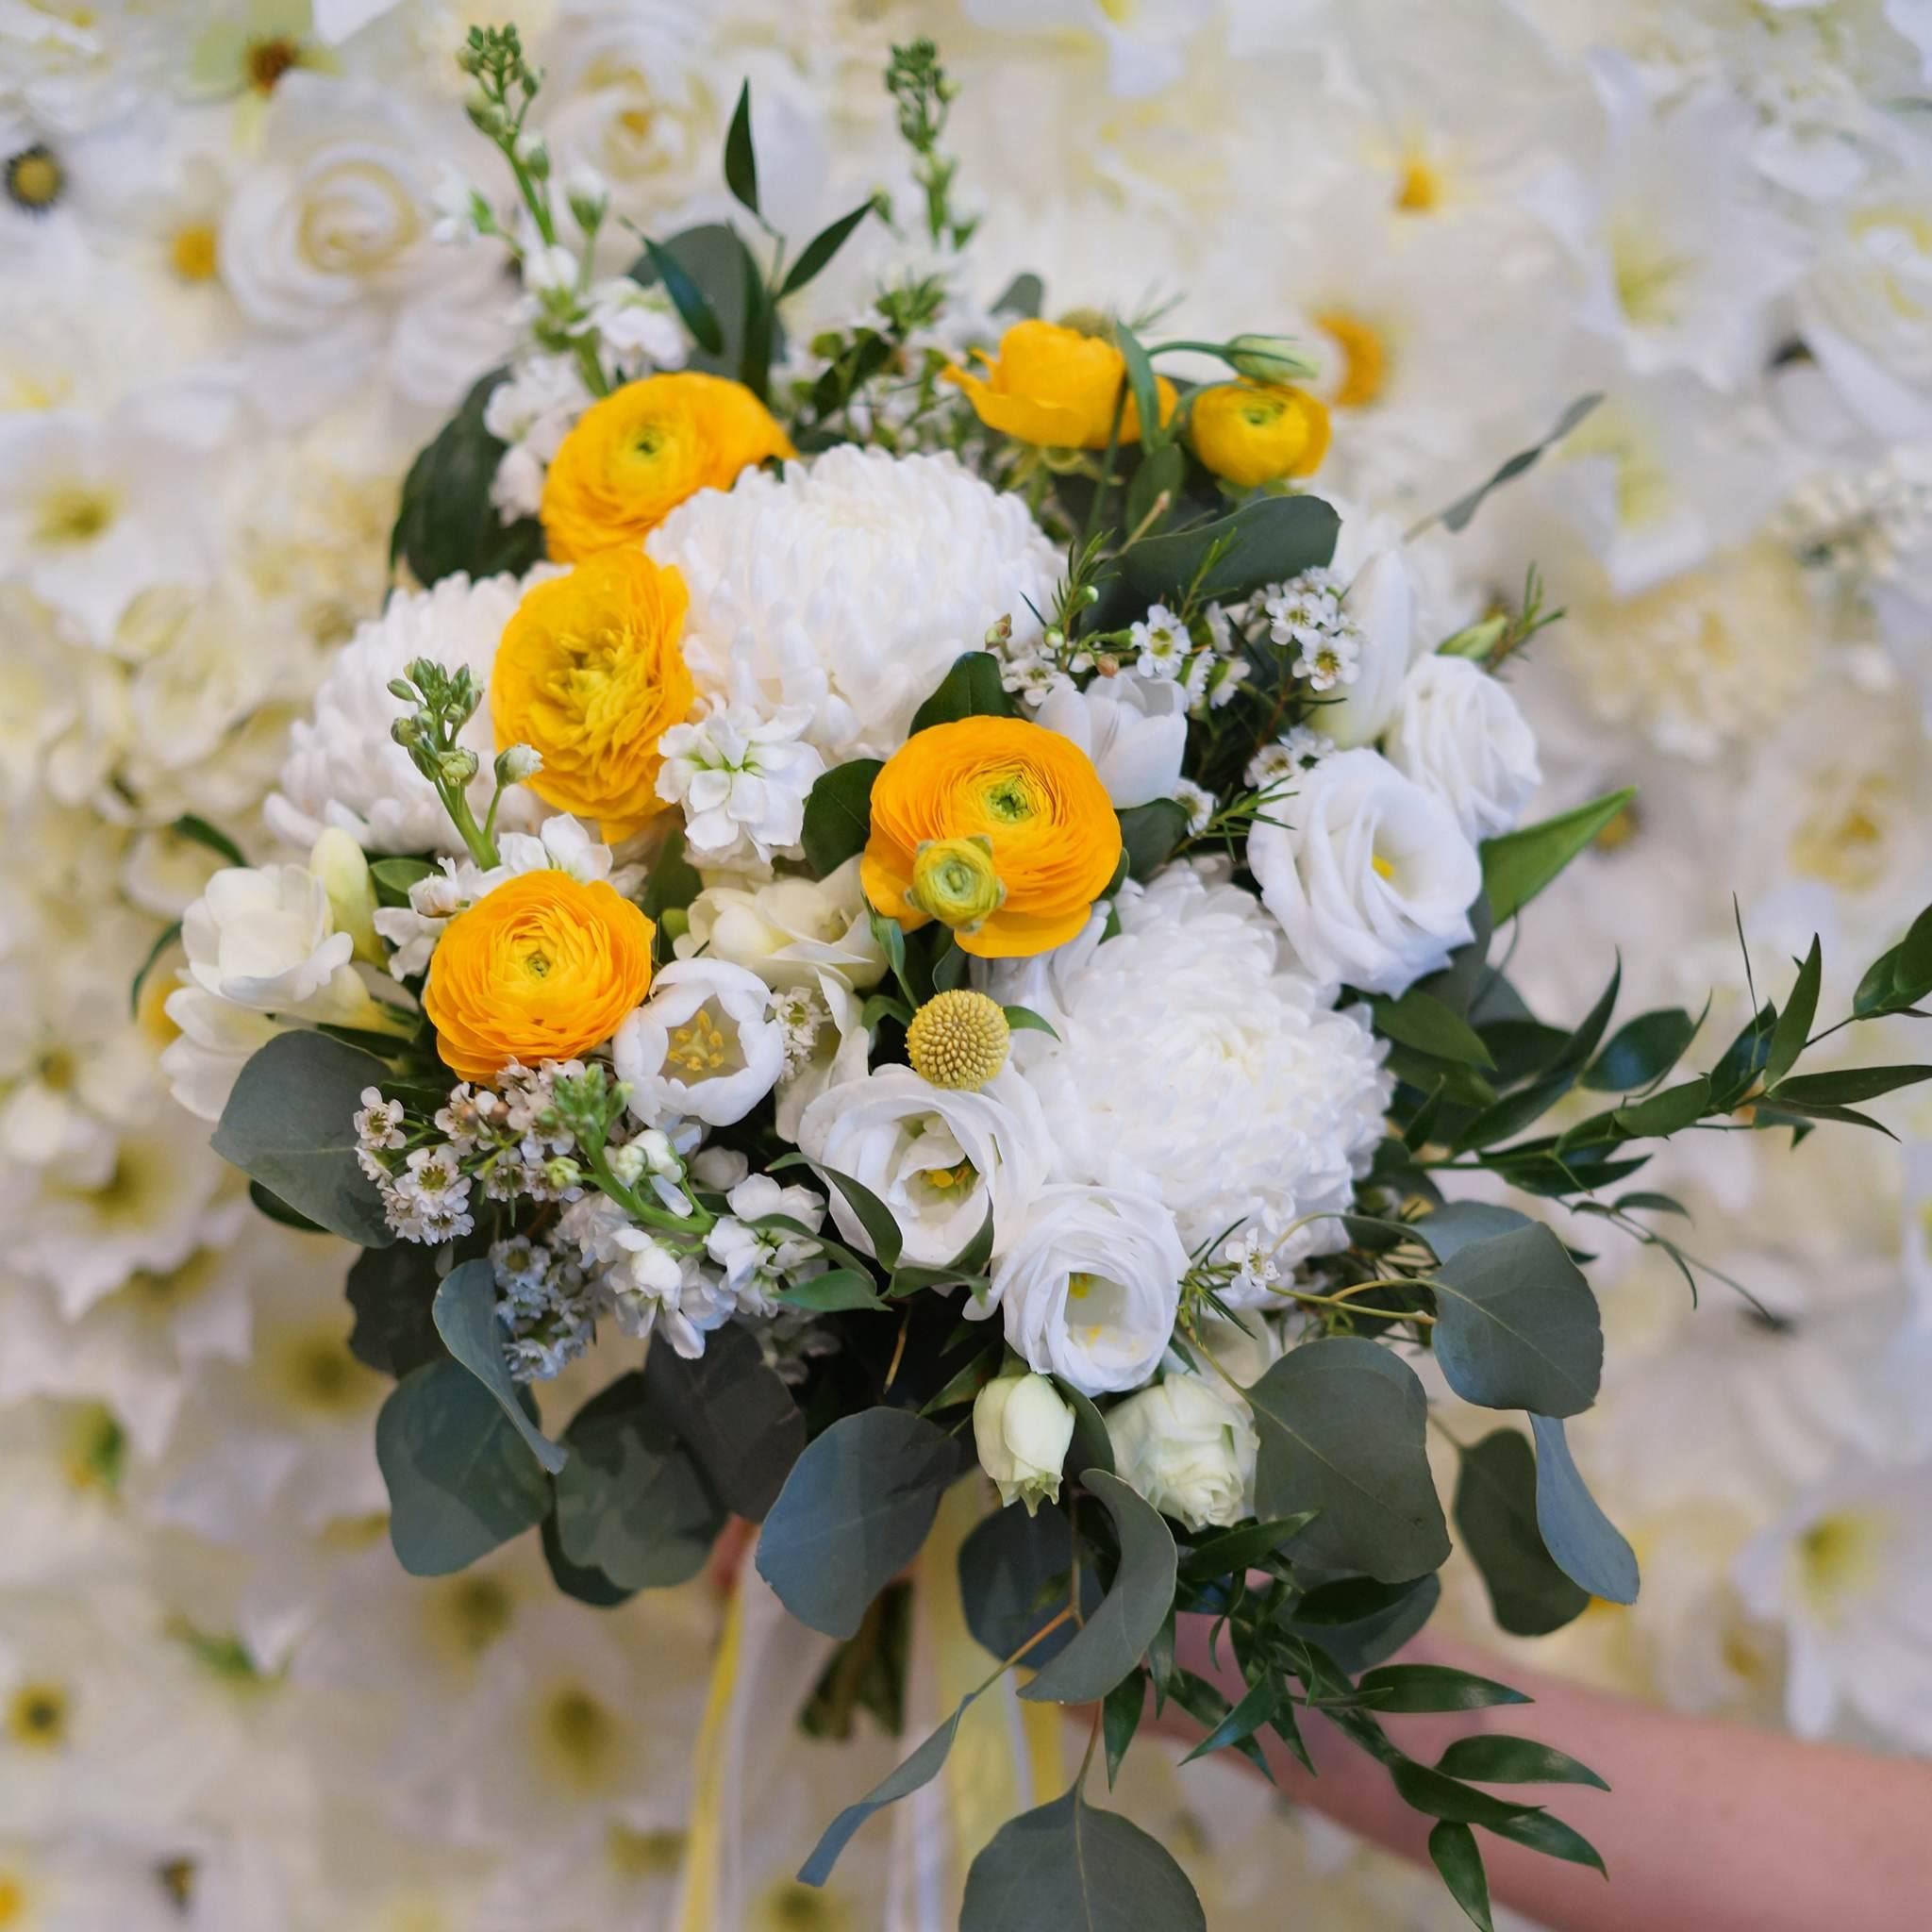 Bridal bouquet with commercial mums and ranunculus